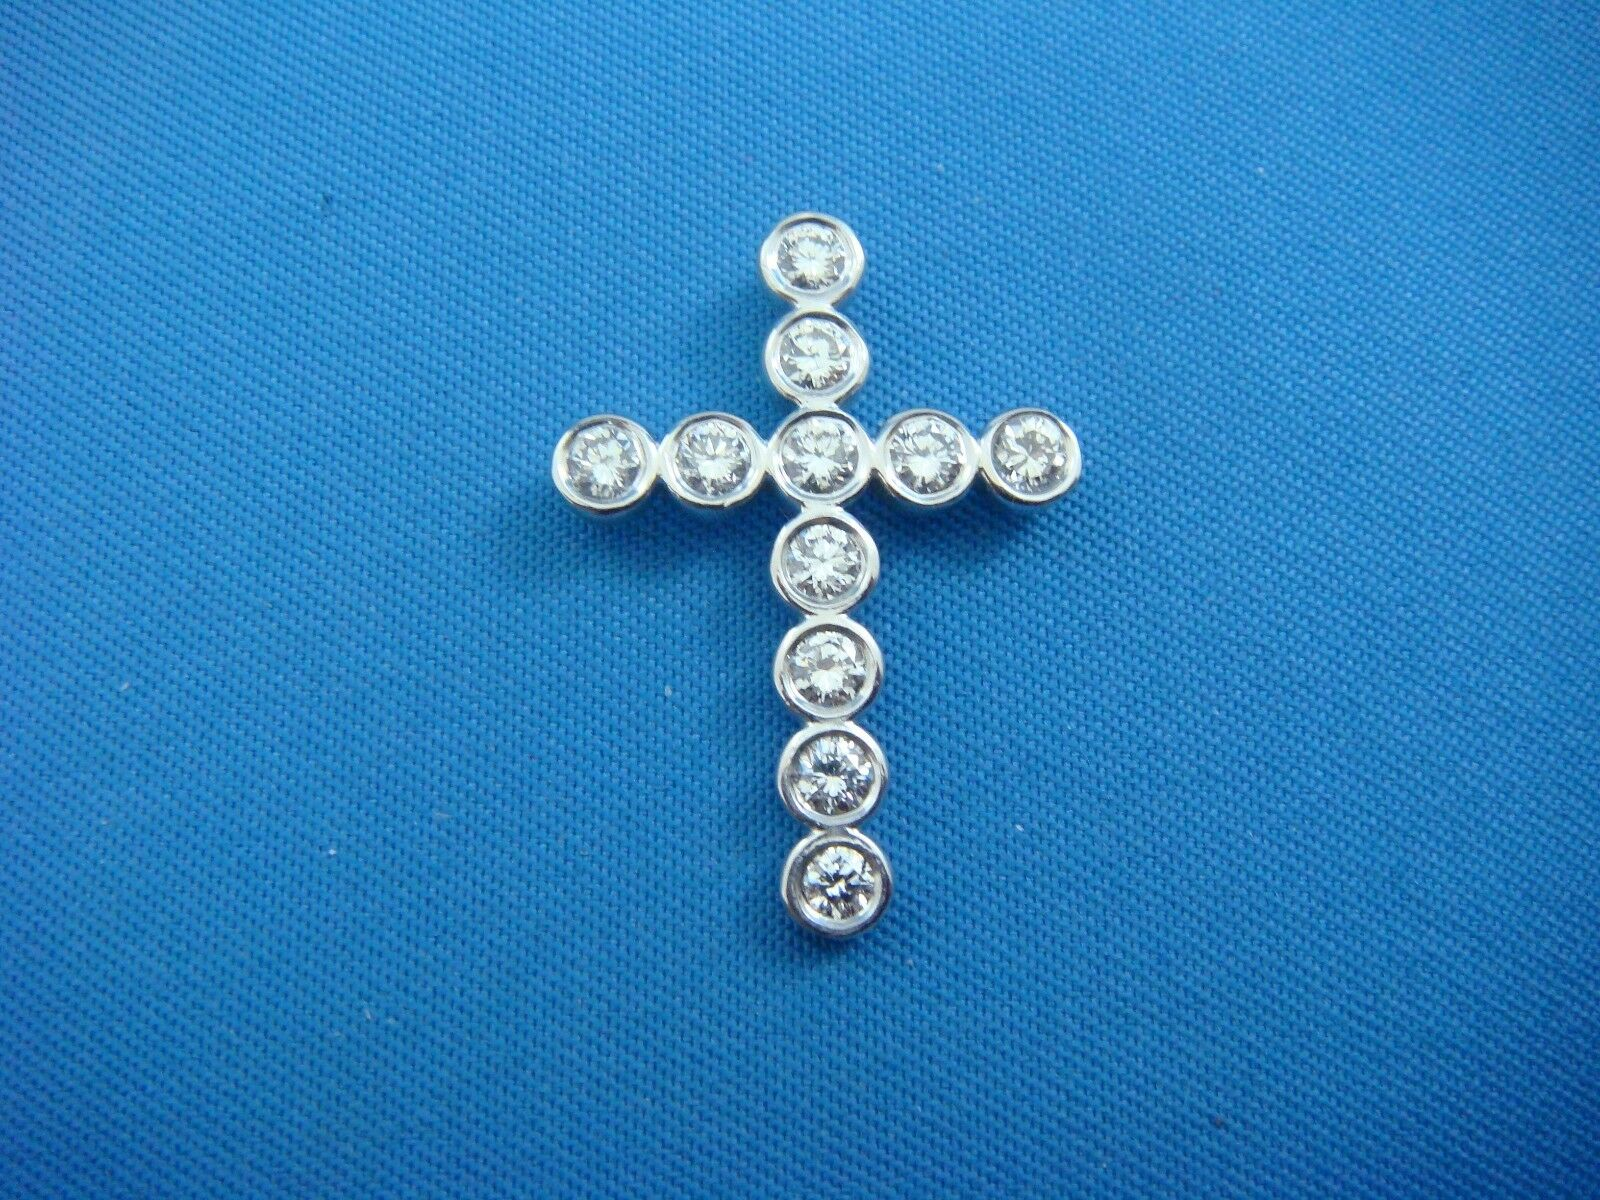 14K WHITE gold 0.80 CT T.W. DIAMONDS BEZEL CROSS 2 GRAMS, 1  LONG, HIDDEN BAIL